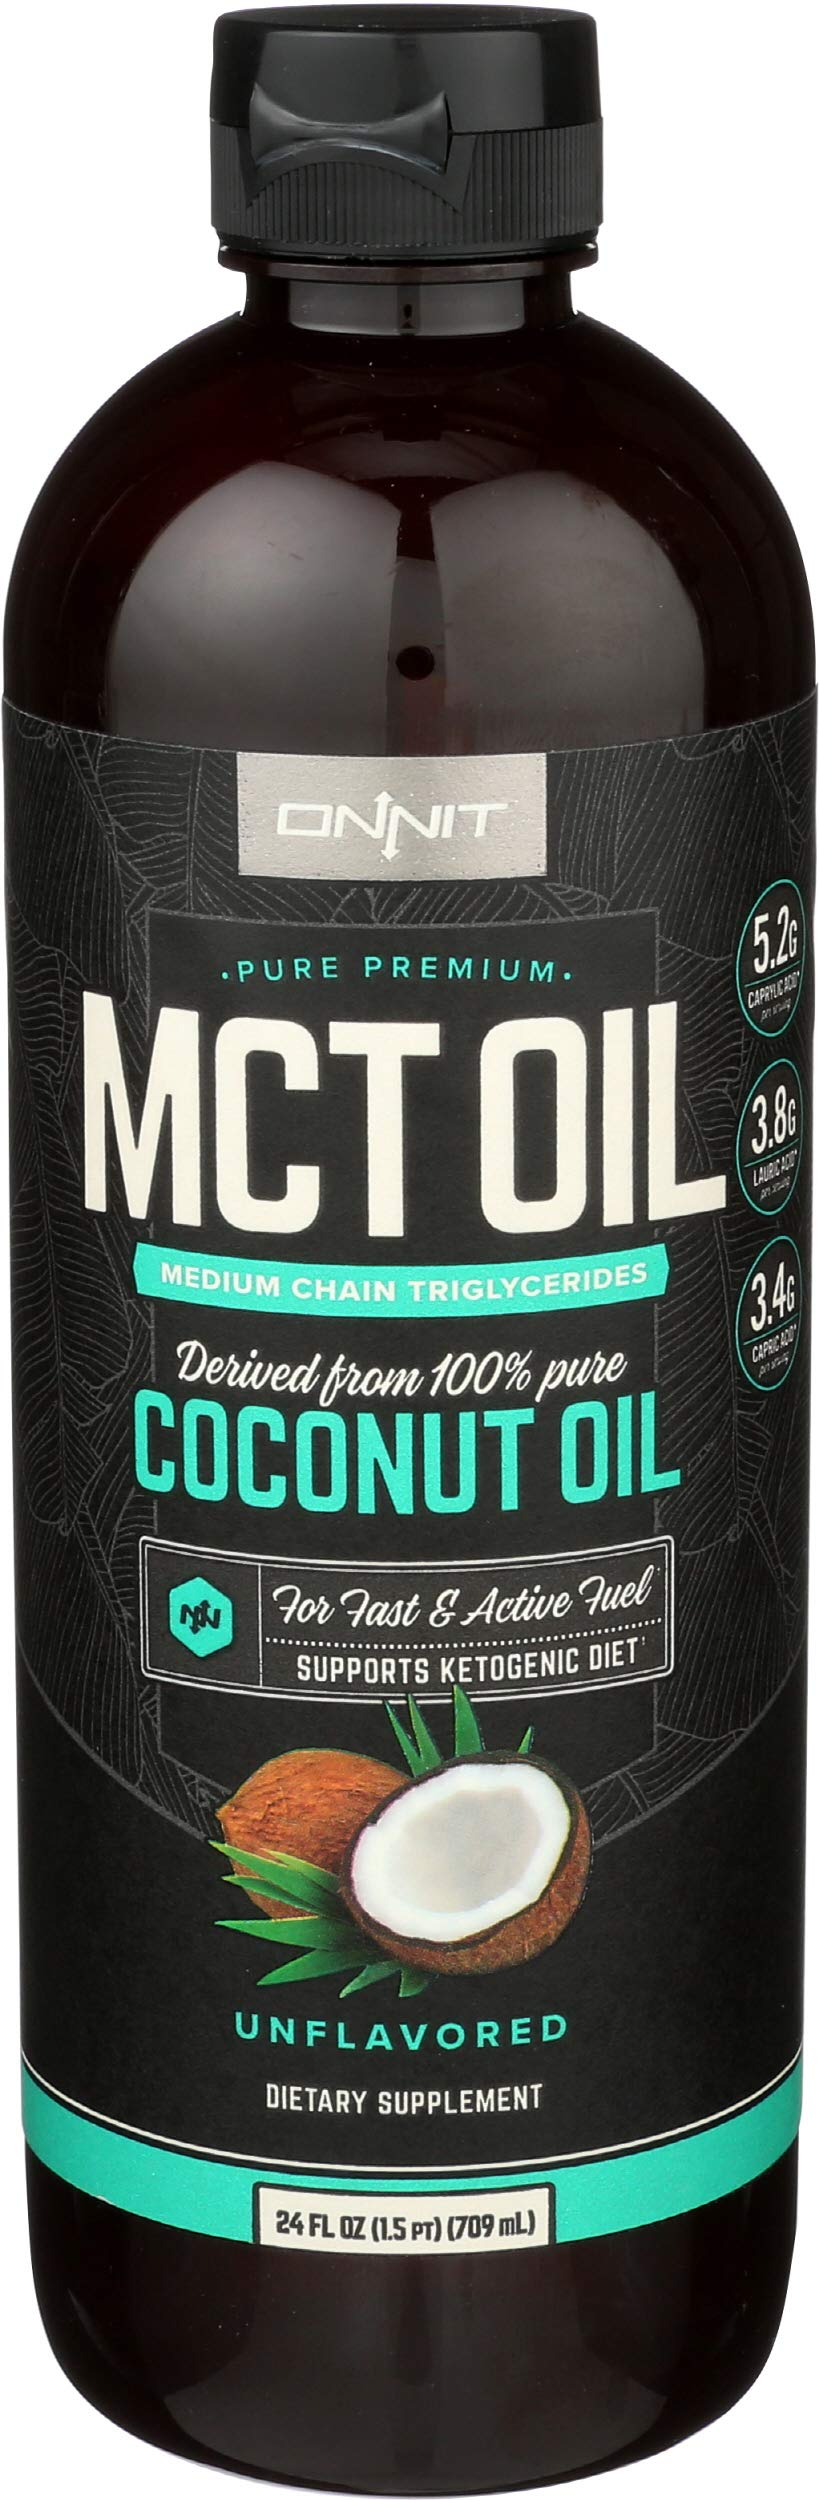 Onnit MCT Oil - Pure MCT Coconut Oil, Ketogenic Diet and Paleo Optimized with C8, C10, Lauric Acid - Perfect for Coffee, Shakes, and Cooking